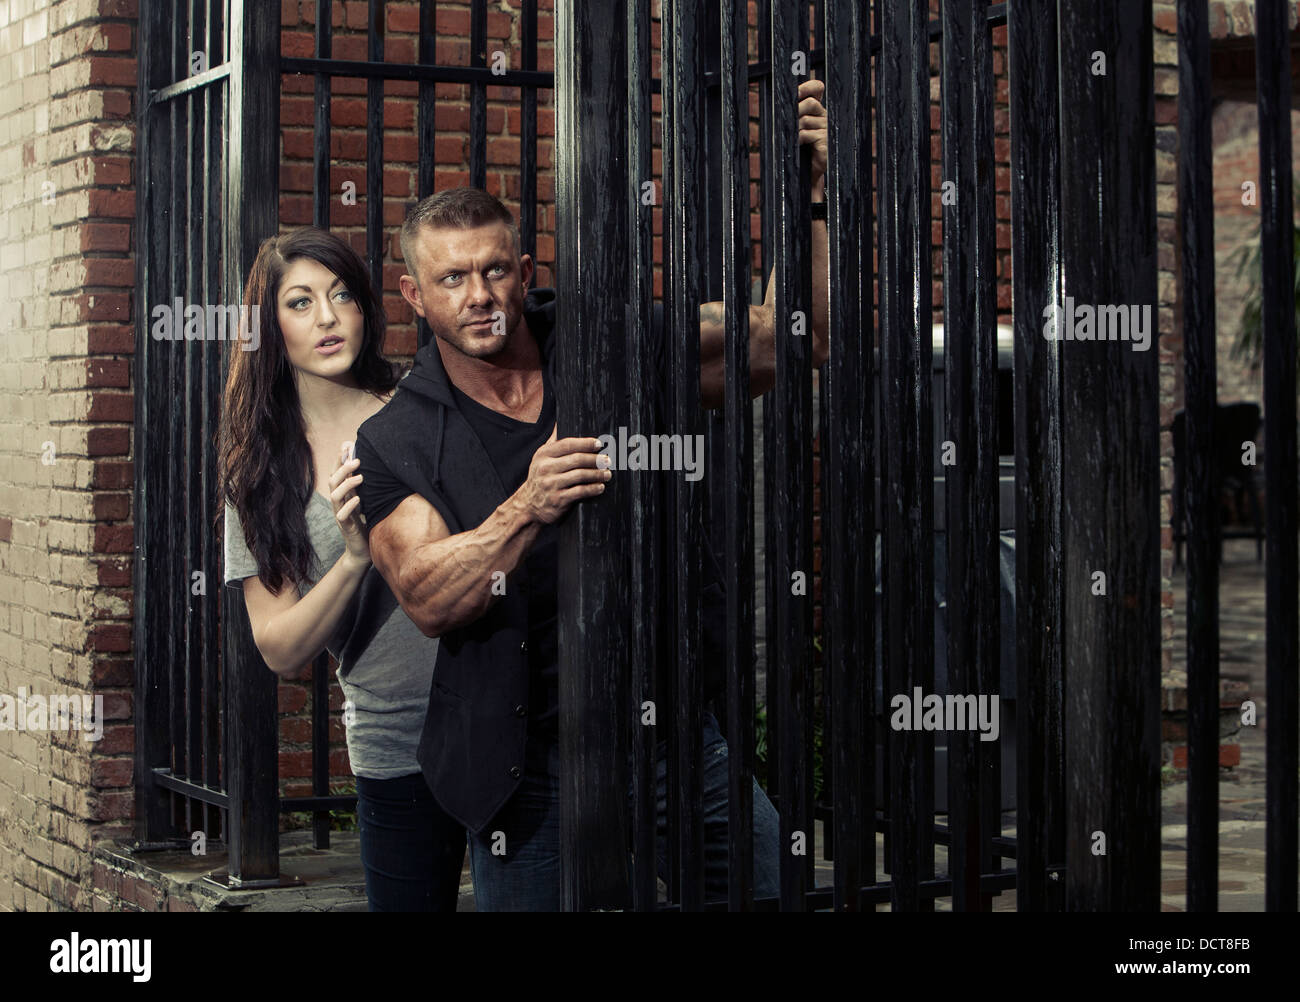 Man and woman in urban setting with a spy movie theme - Stock Image